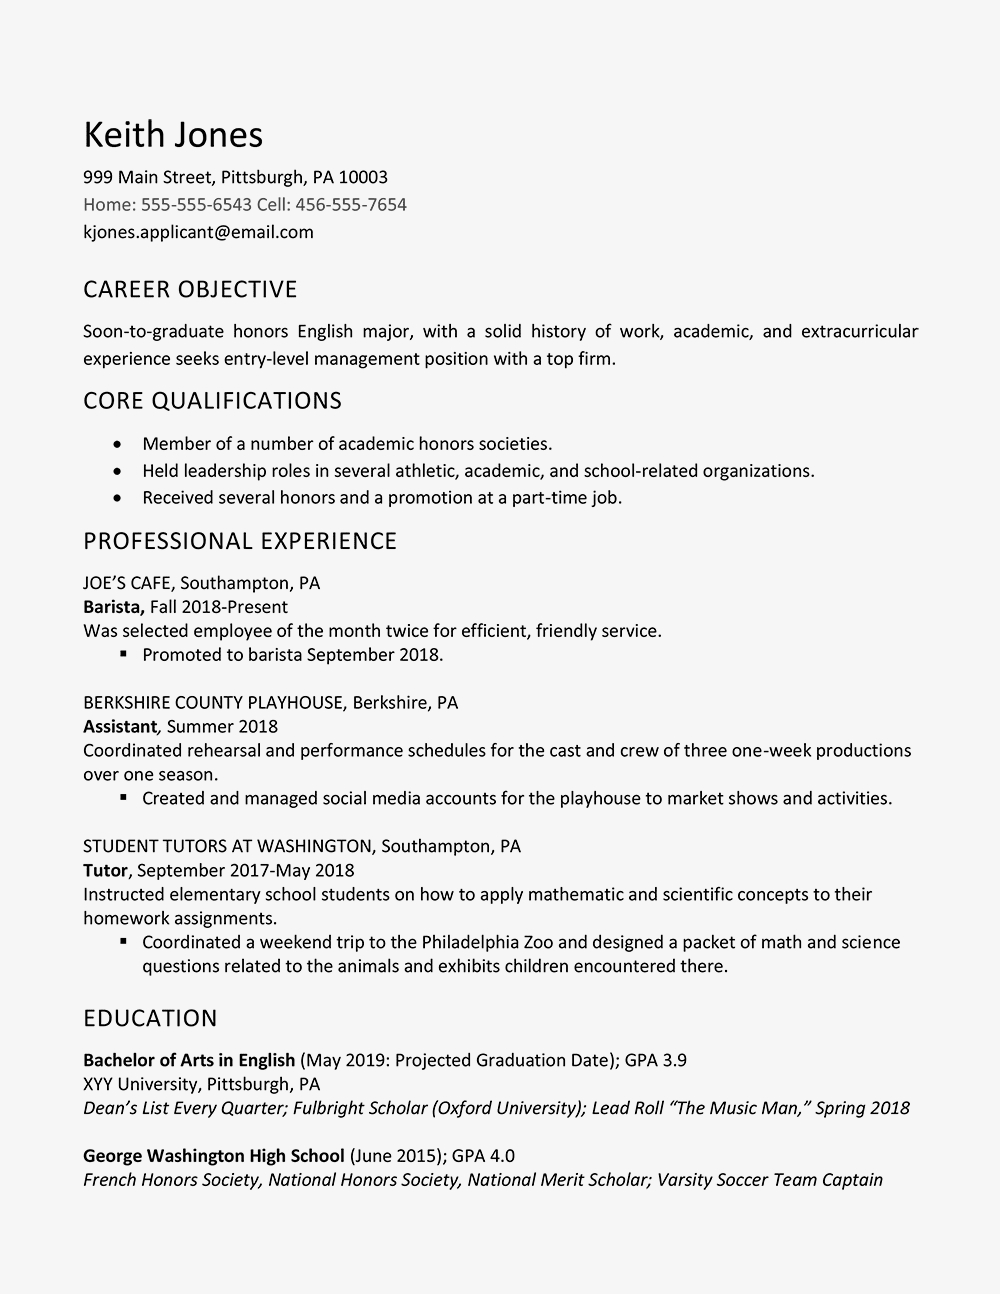 Academic Resume Template for Grad School - High School Graduate Resume Example Work Experience